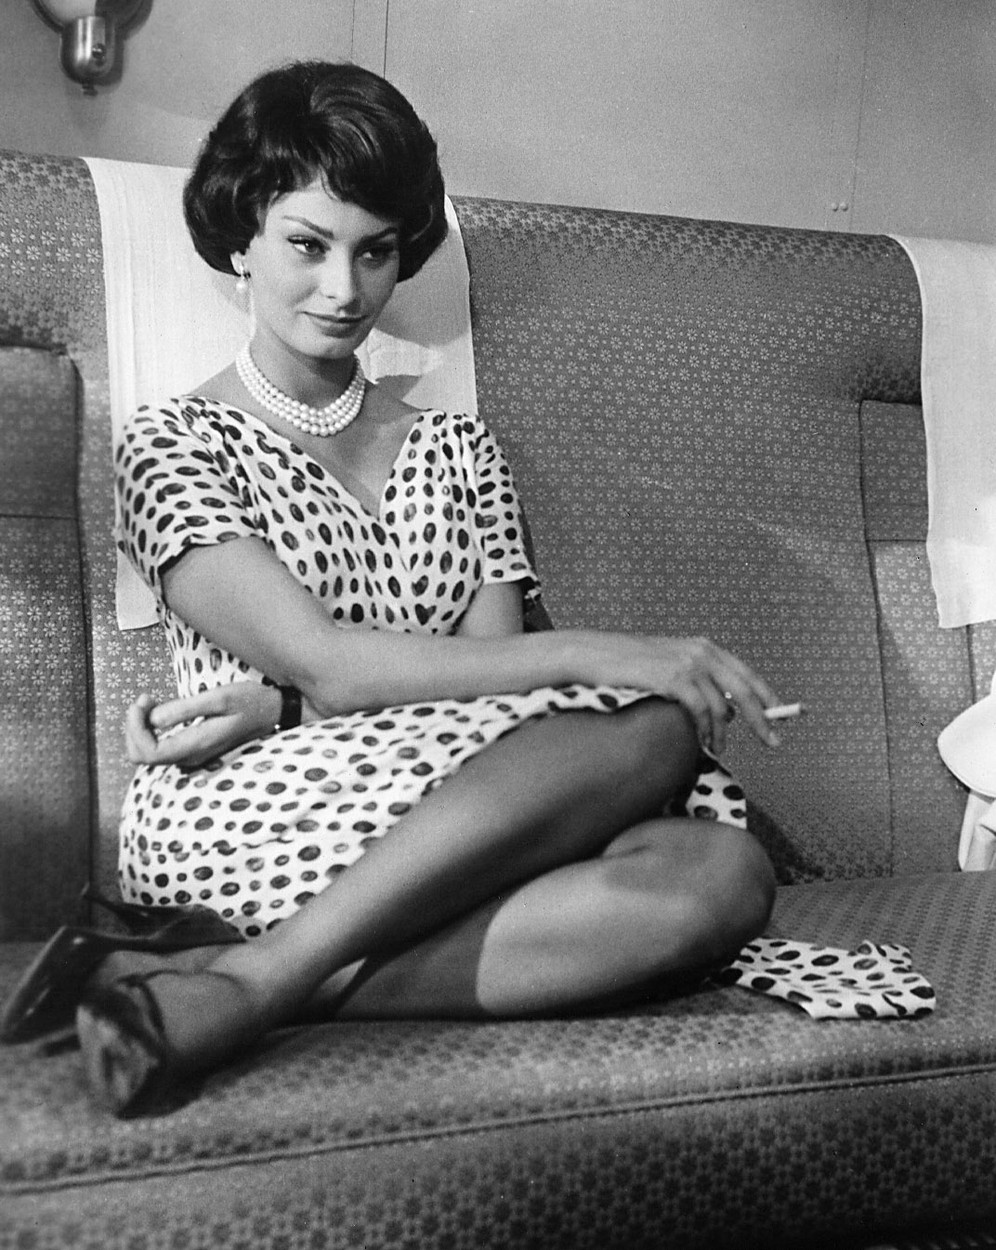 THAT KIND OF WOMAN, Sophia Loren, 1959, sitting on train seat,Image: 97133033, License: Rights-managed, Restrictions: For usage credit please use; Courtesy Everett Collection, Model Release: no